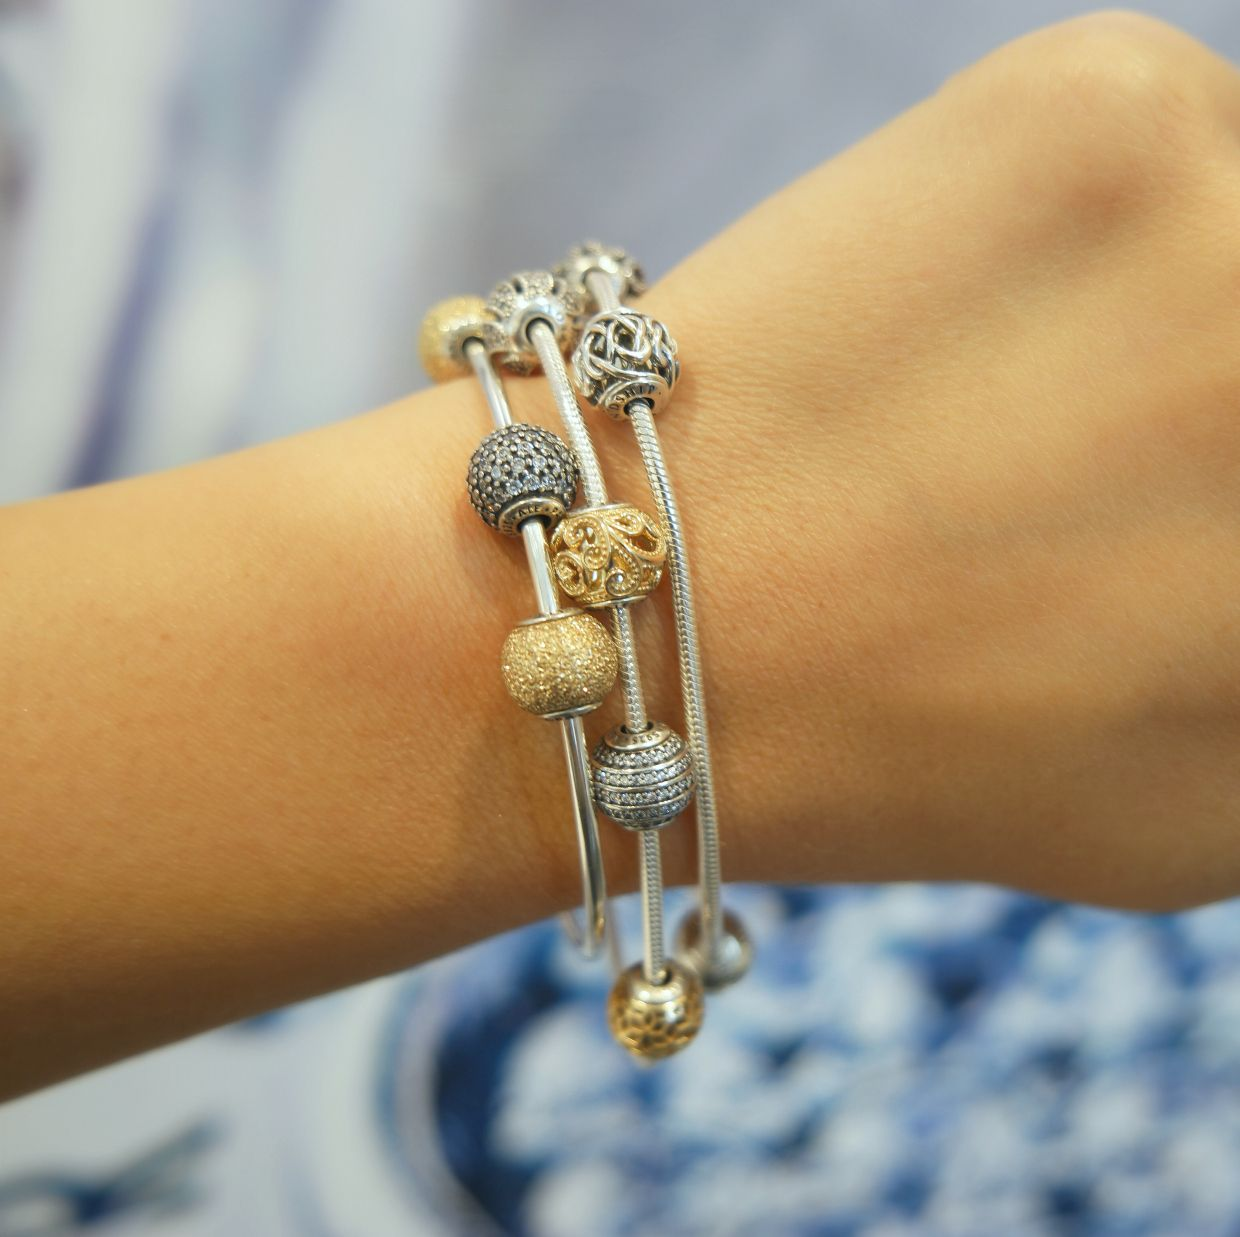 208a66169 PANDORA Essence silver and 14k gold charms mixed. #PANDORAEssence  #PANDORAbracelets #PANDORAcharms